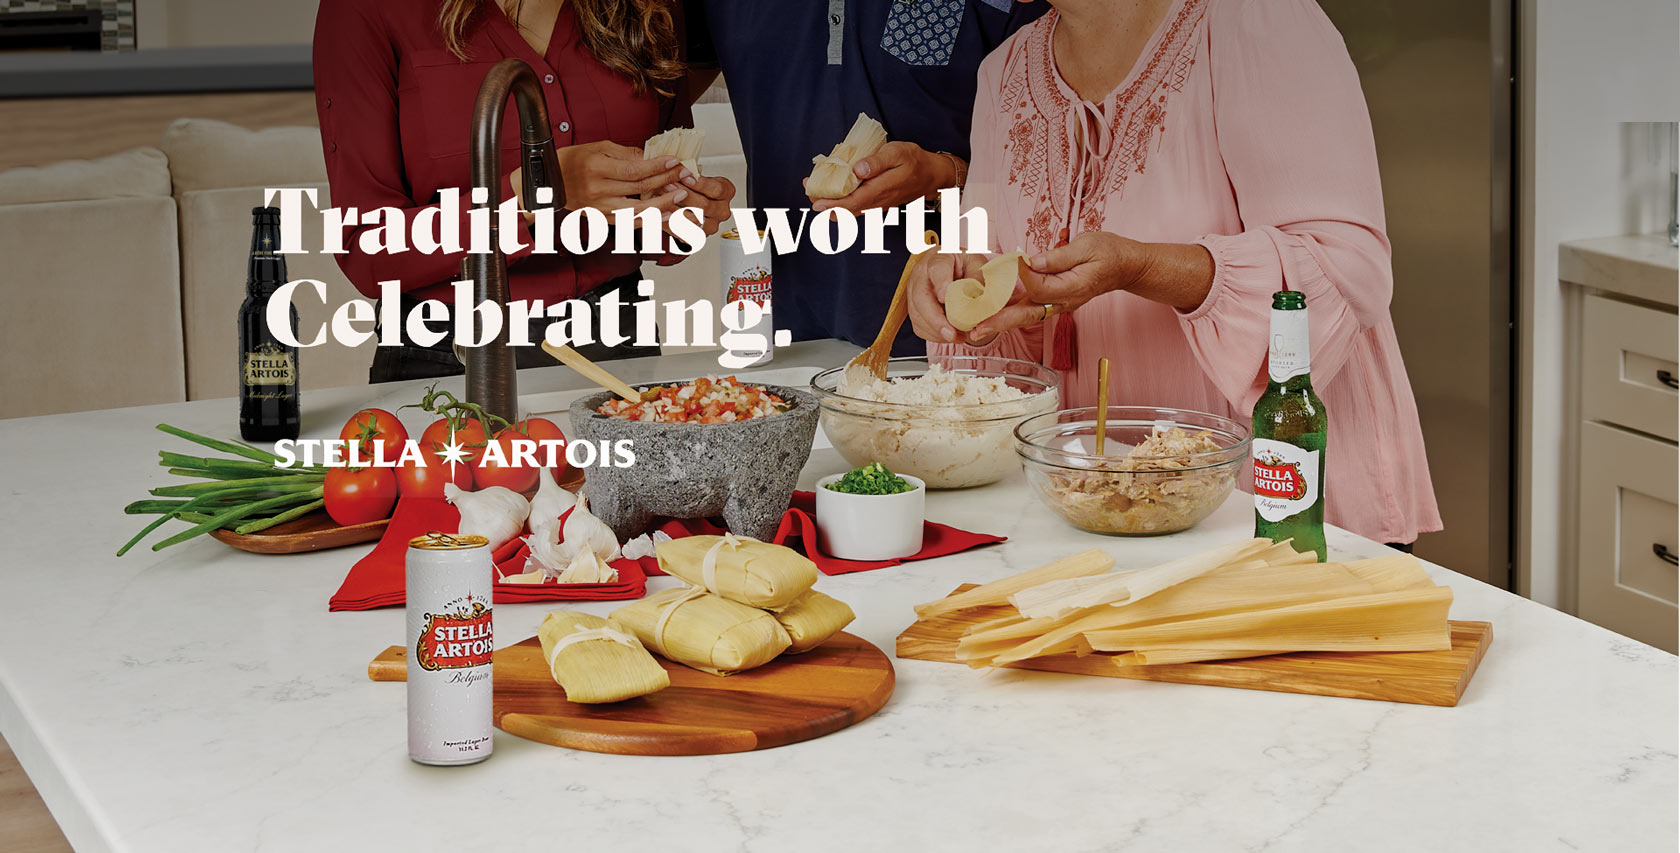 Stella Artois - Behind The Scenes